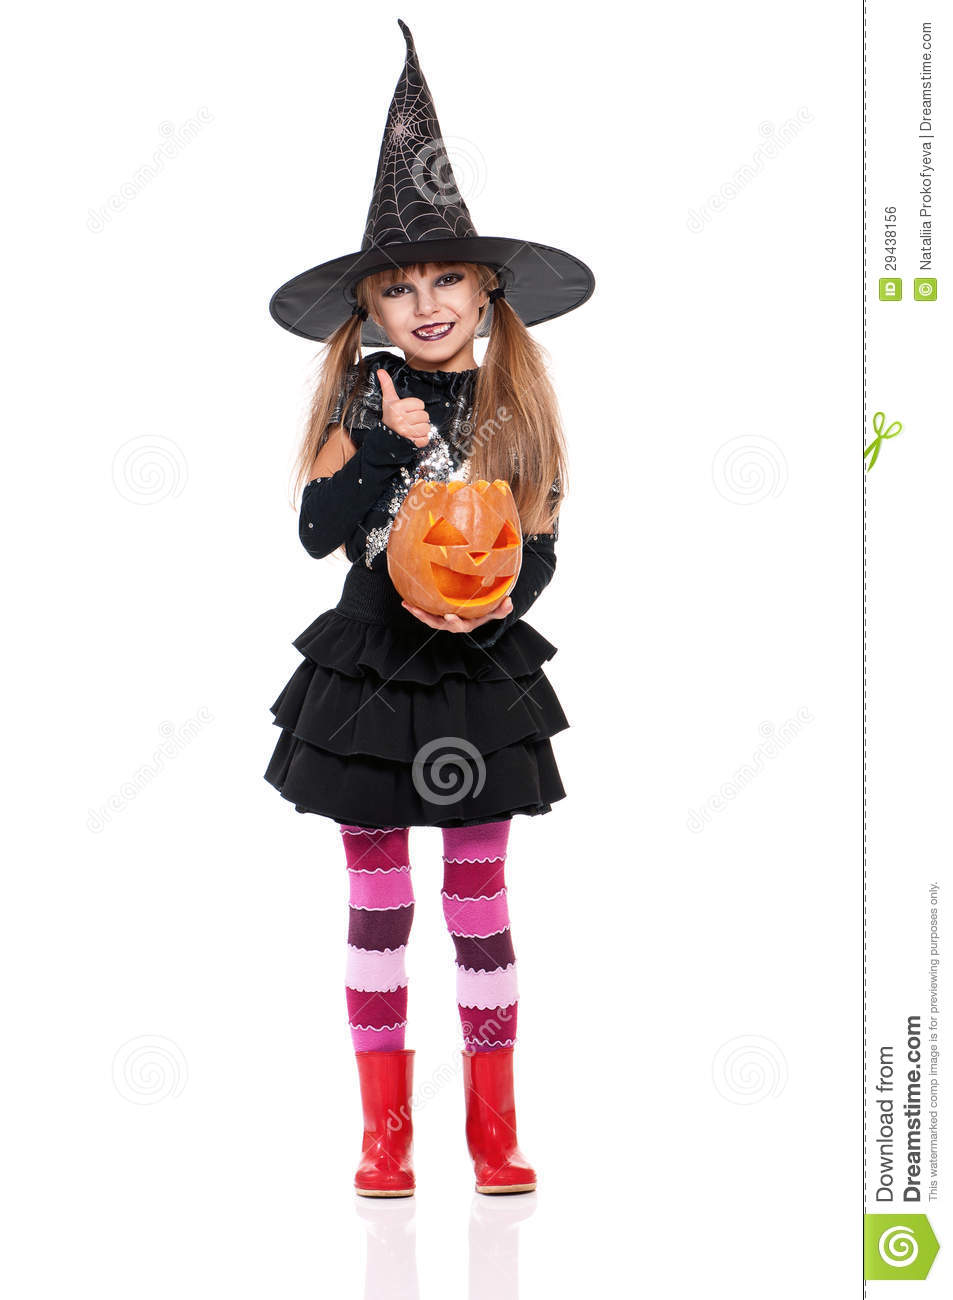 Little Girl In Halloween Costume Royalty Free Stock Image - Image ...